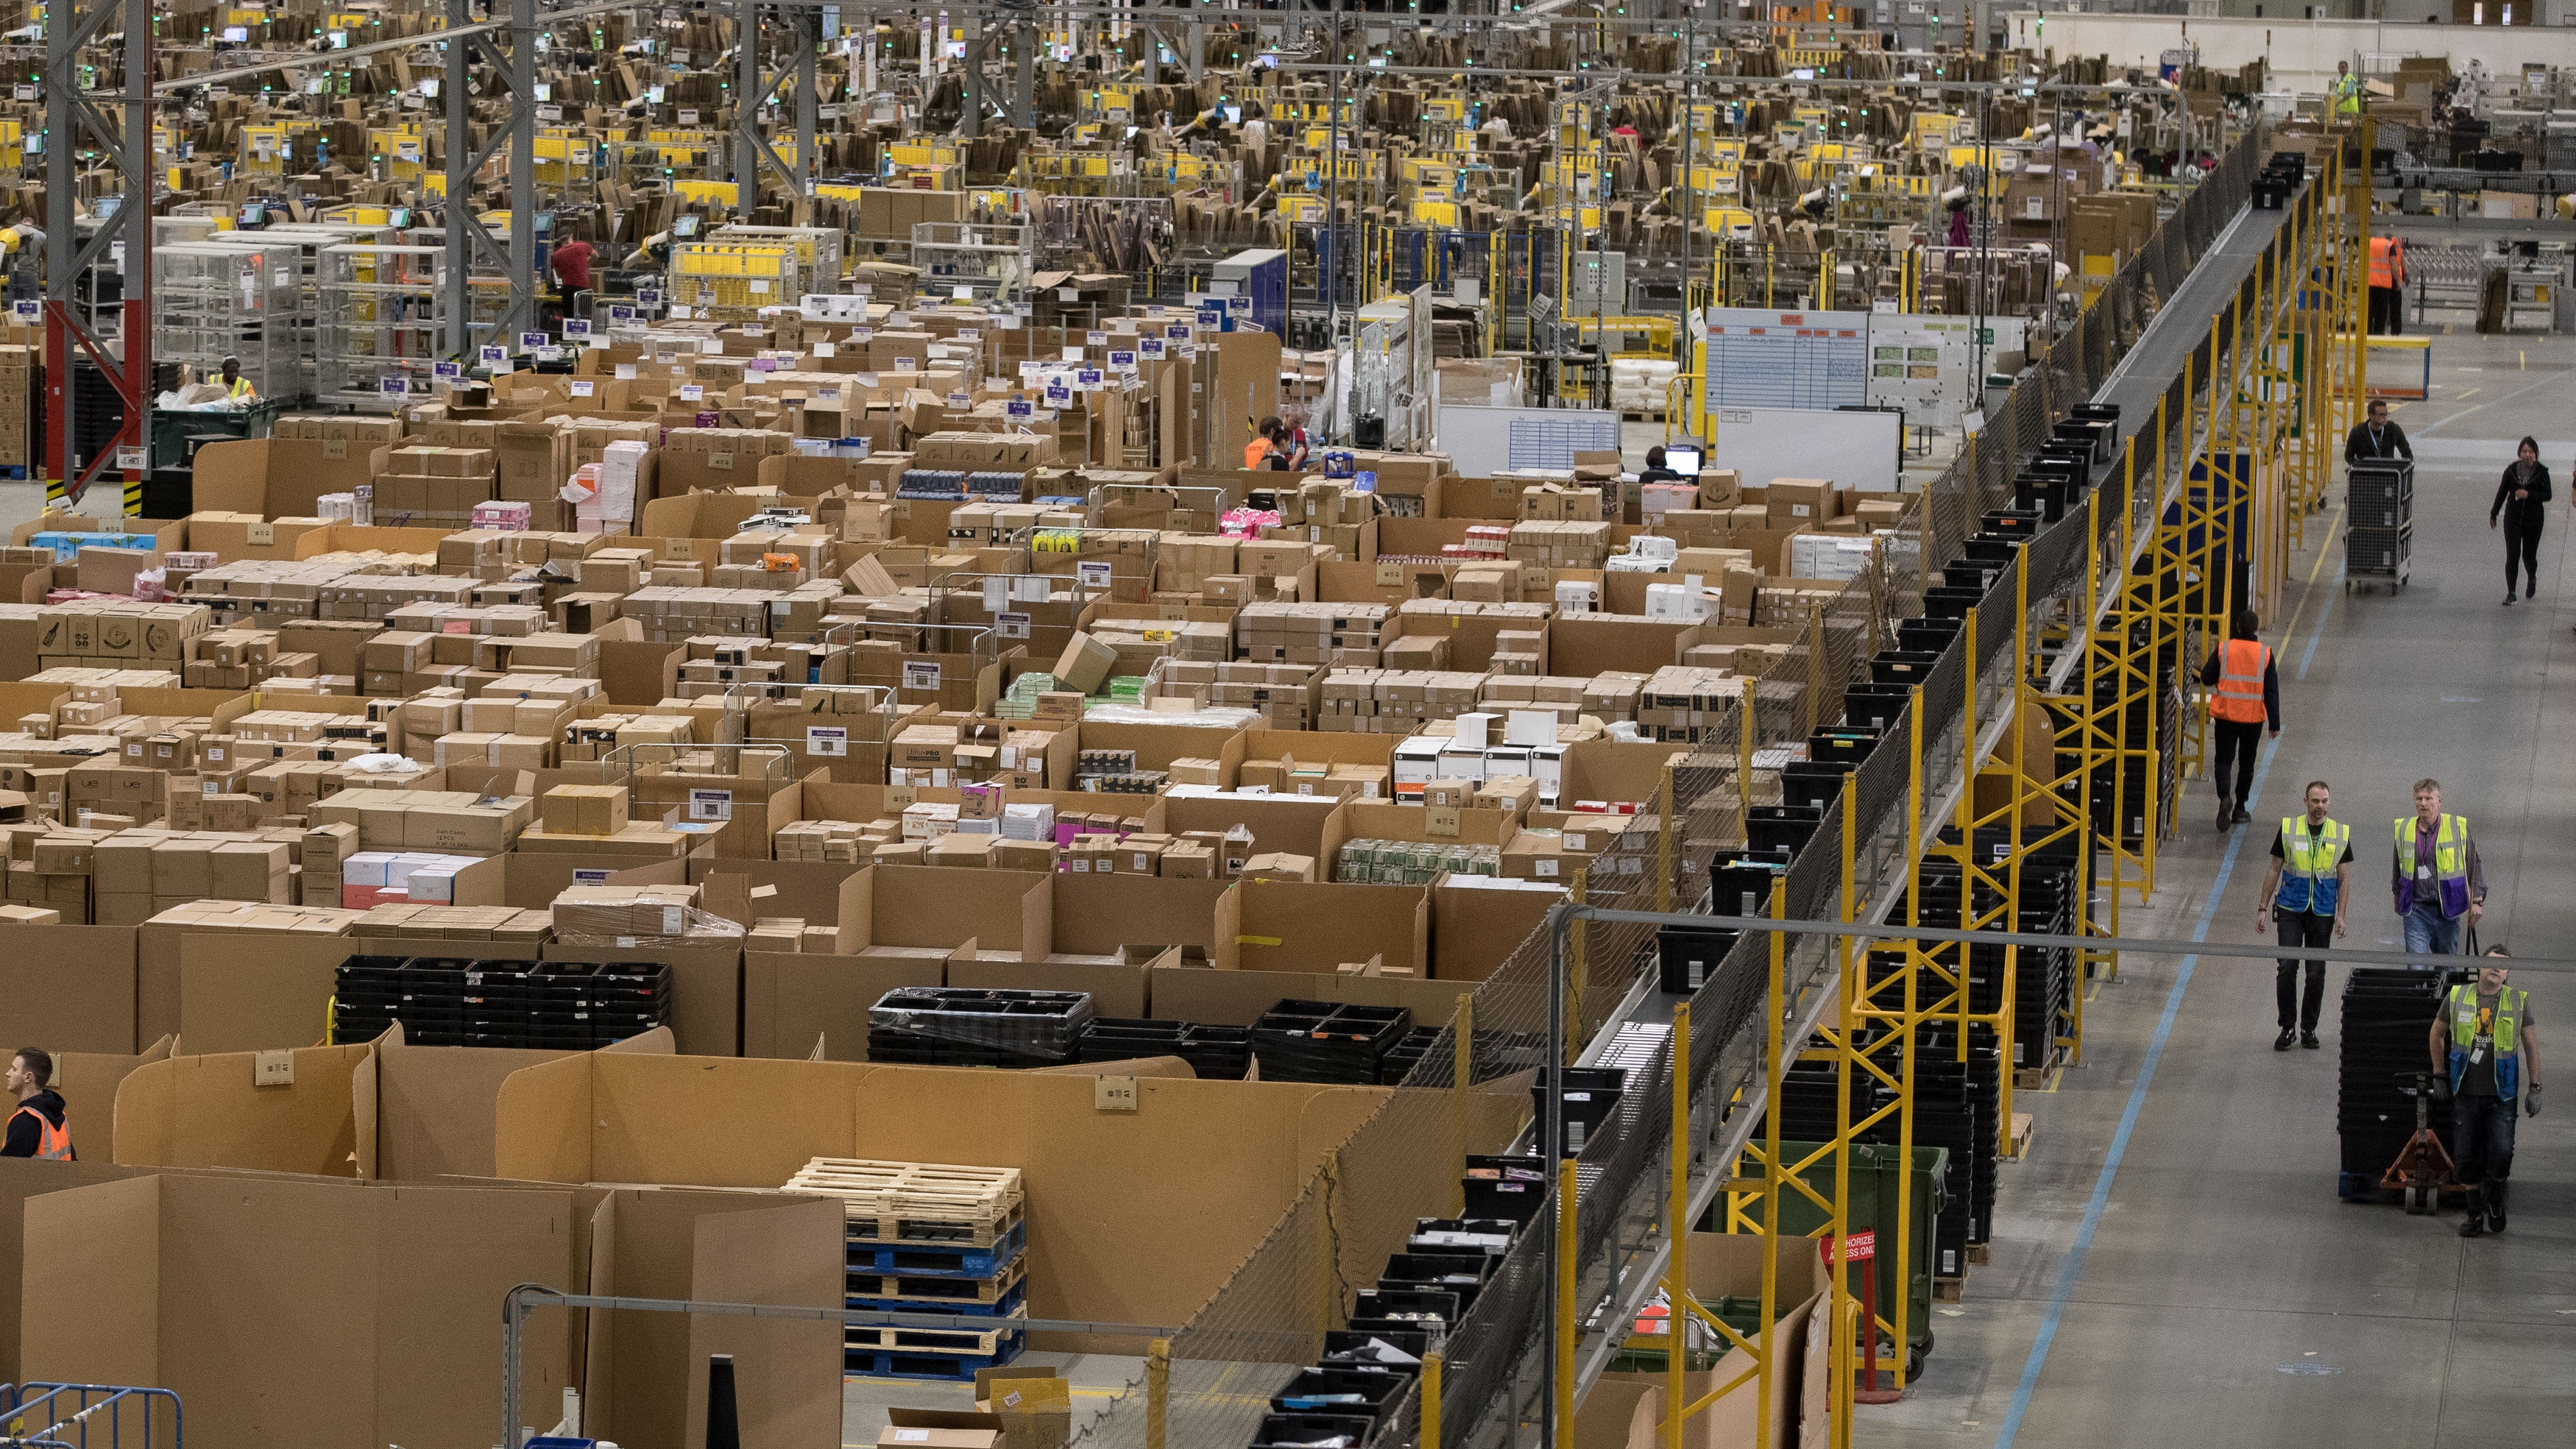 As Amazon looks to deliver, FedEx and UPS shares fall